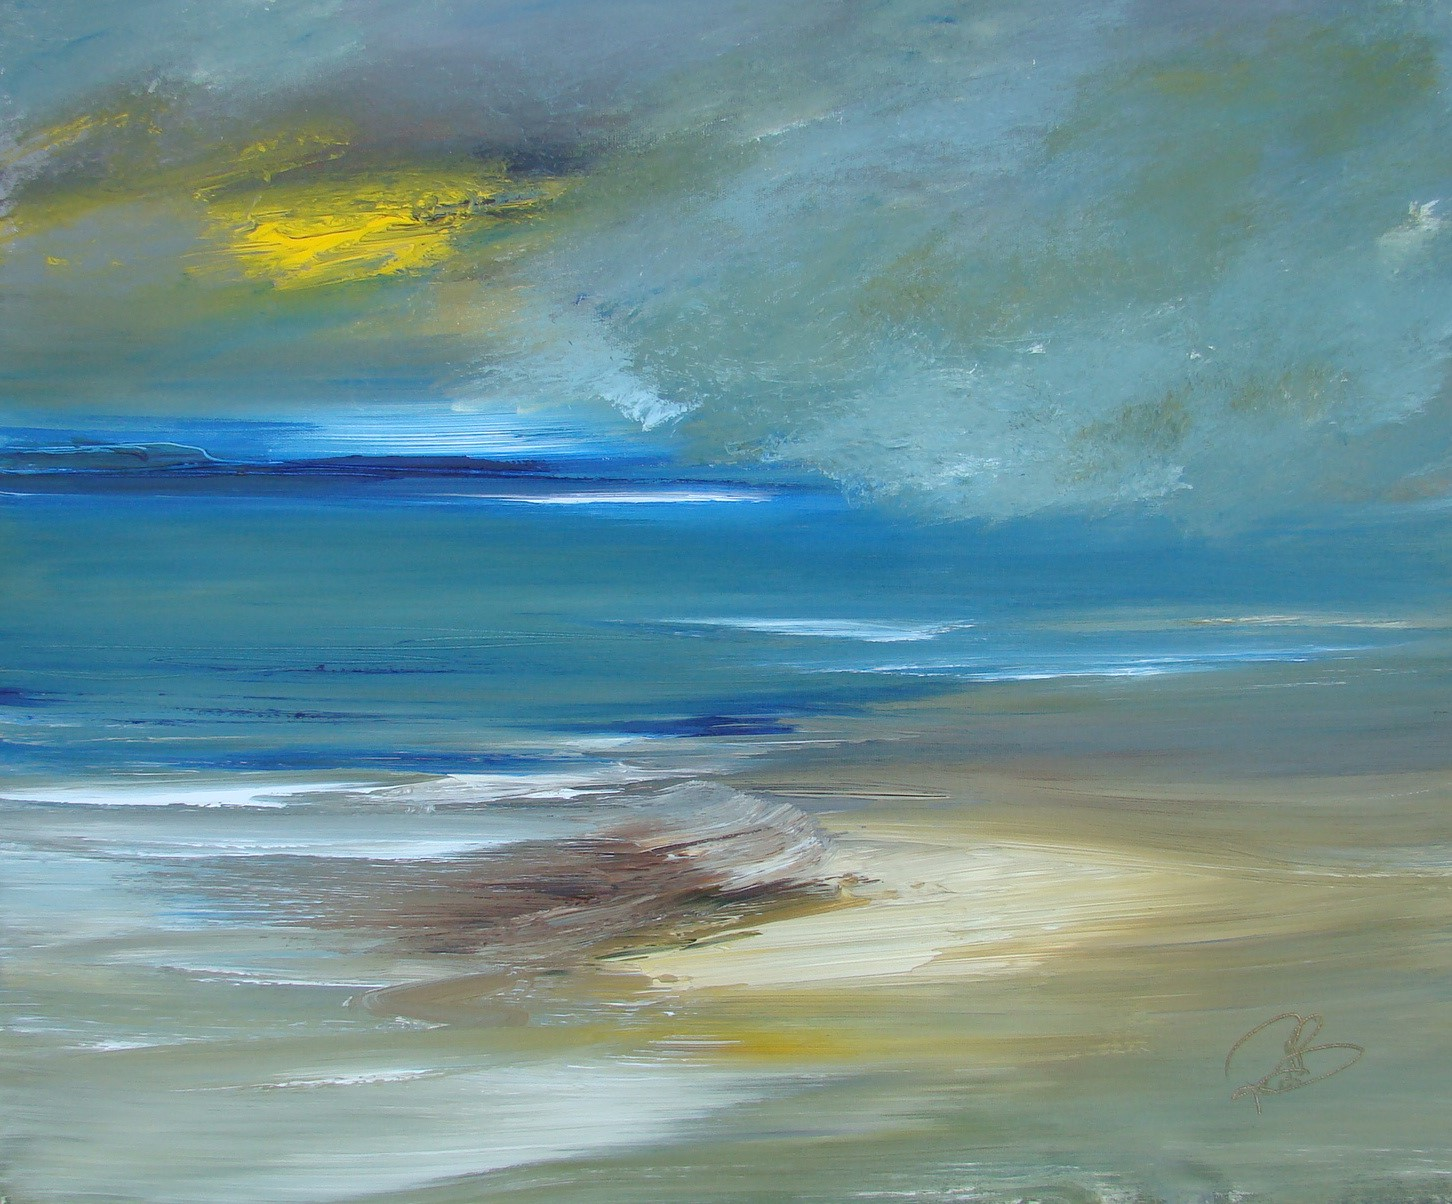 'sudden clouds' by artist Rosanne Barr